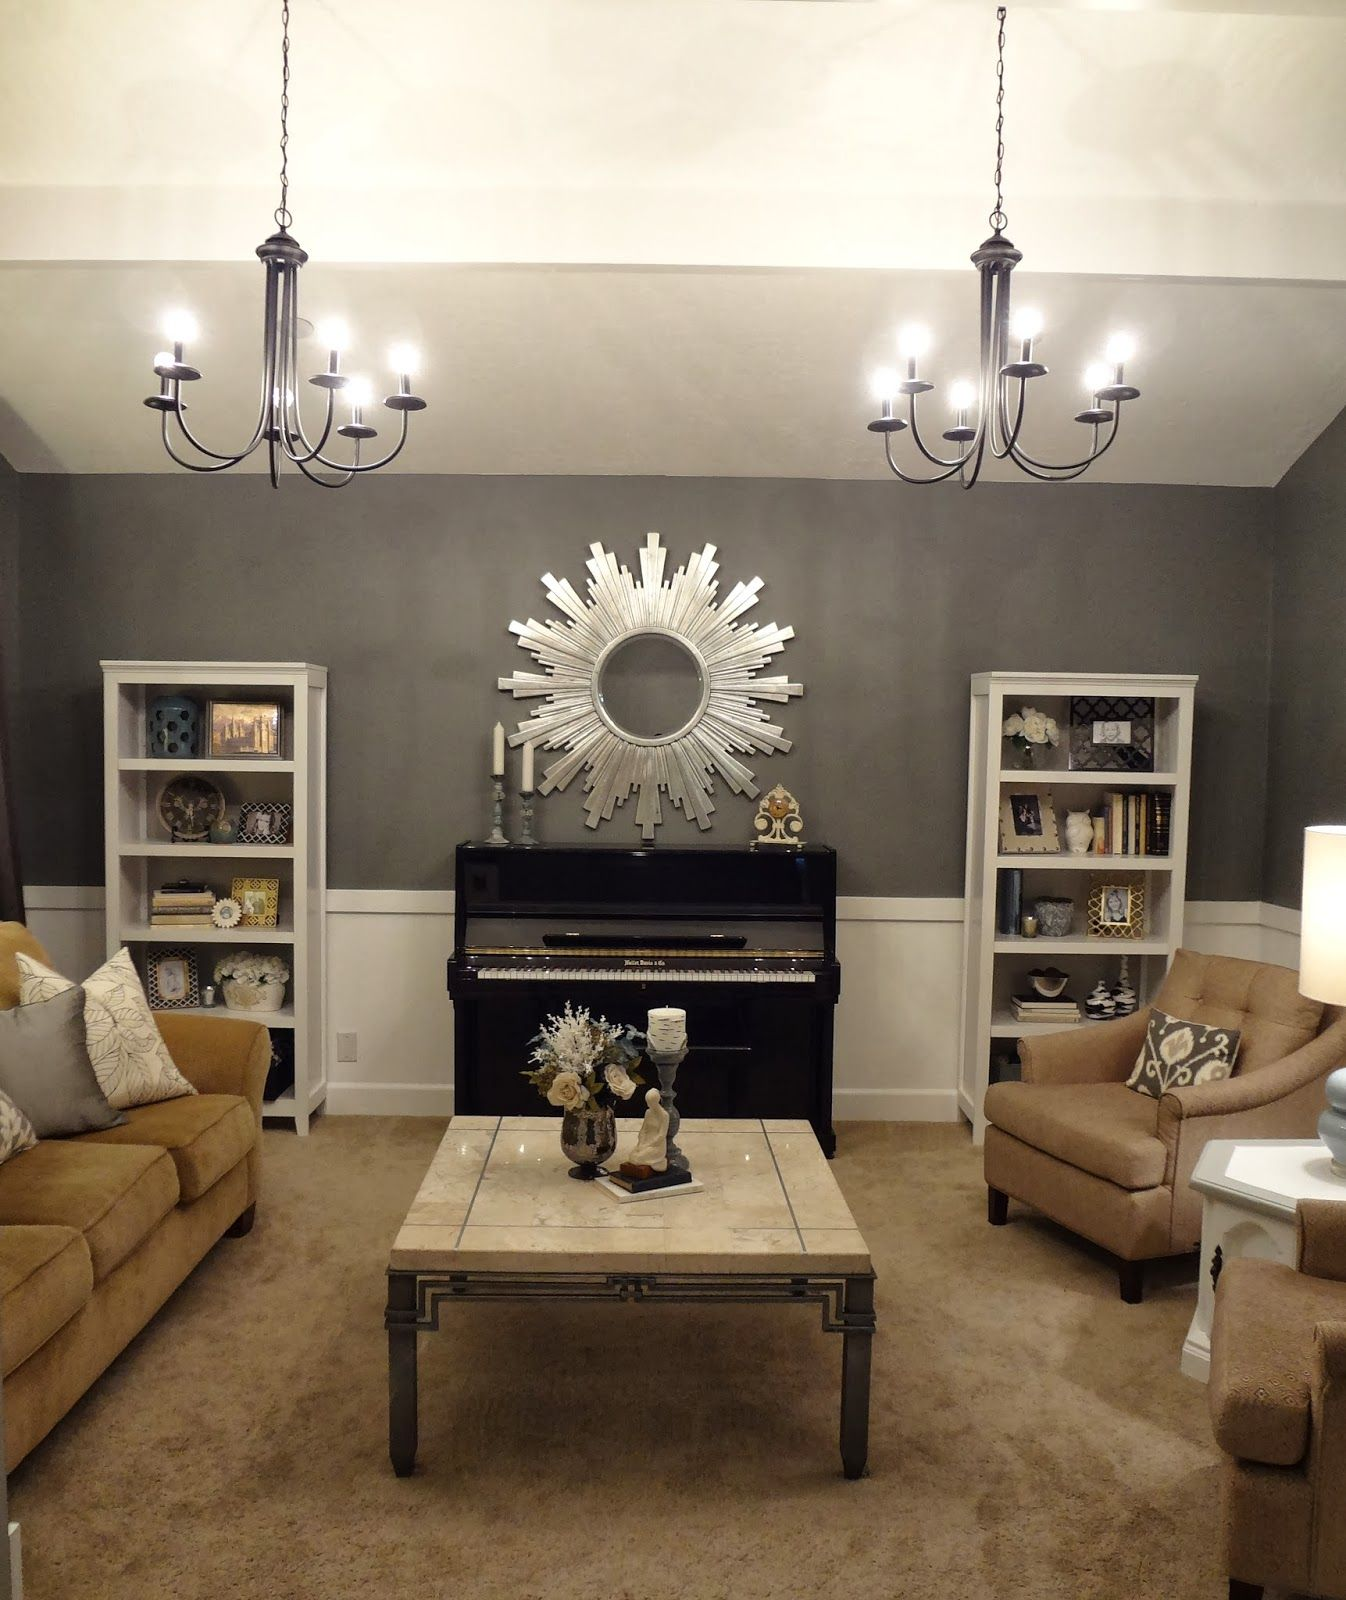 Living Room Design With Upright Piano